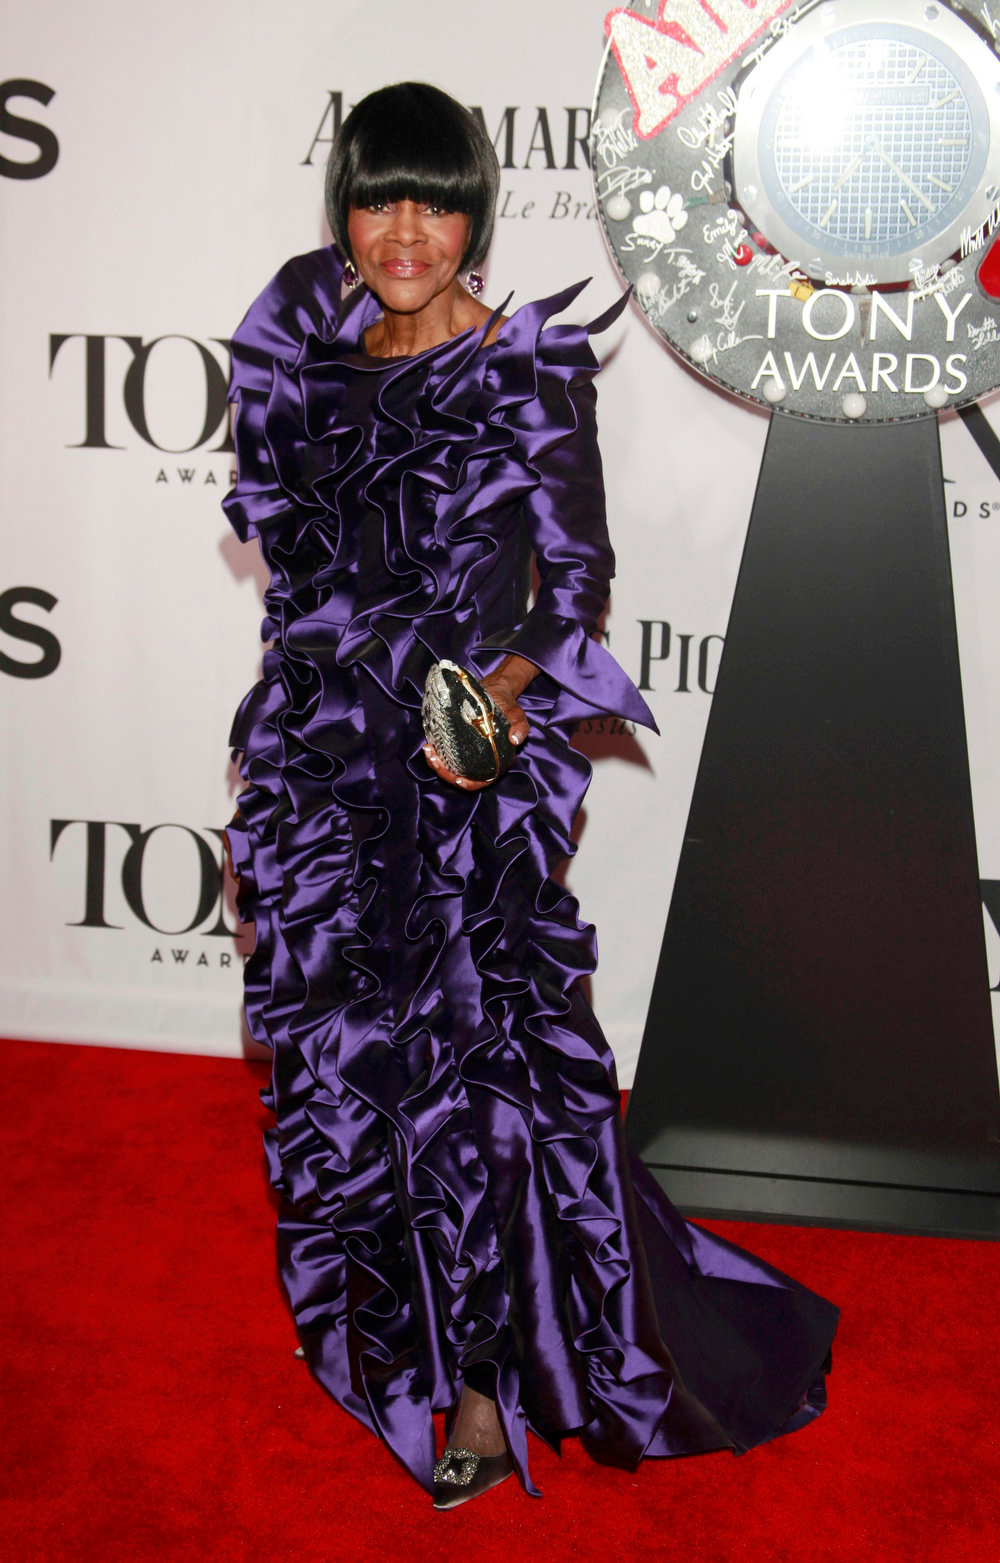 ". Actress Cicely Tyson, nominated for best performance by an actress in a leading role in a play for ""The Trip to Bountiful\"" arrives to the American Theatre Wing\'s annual Tony Awards in New York June 9, 2013. REUTERS/Carlo Allegri"